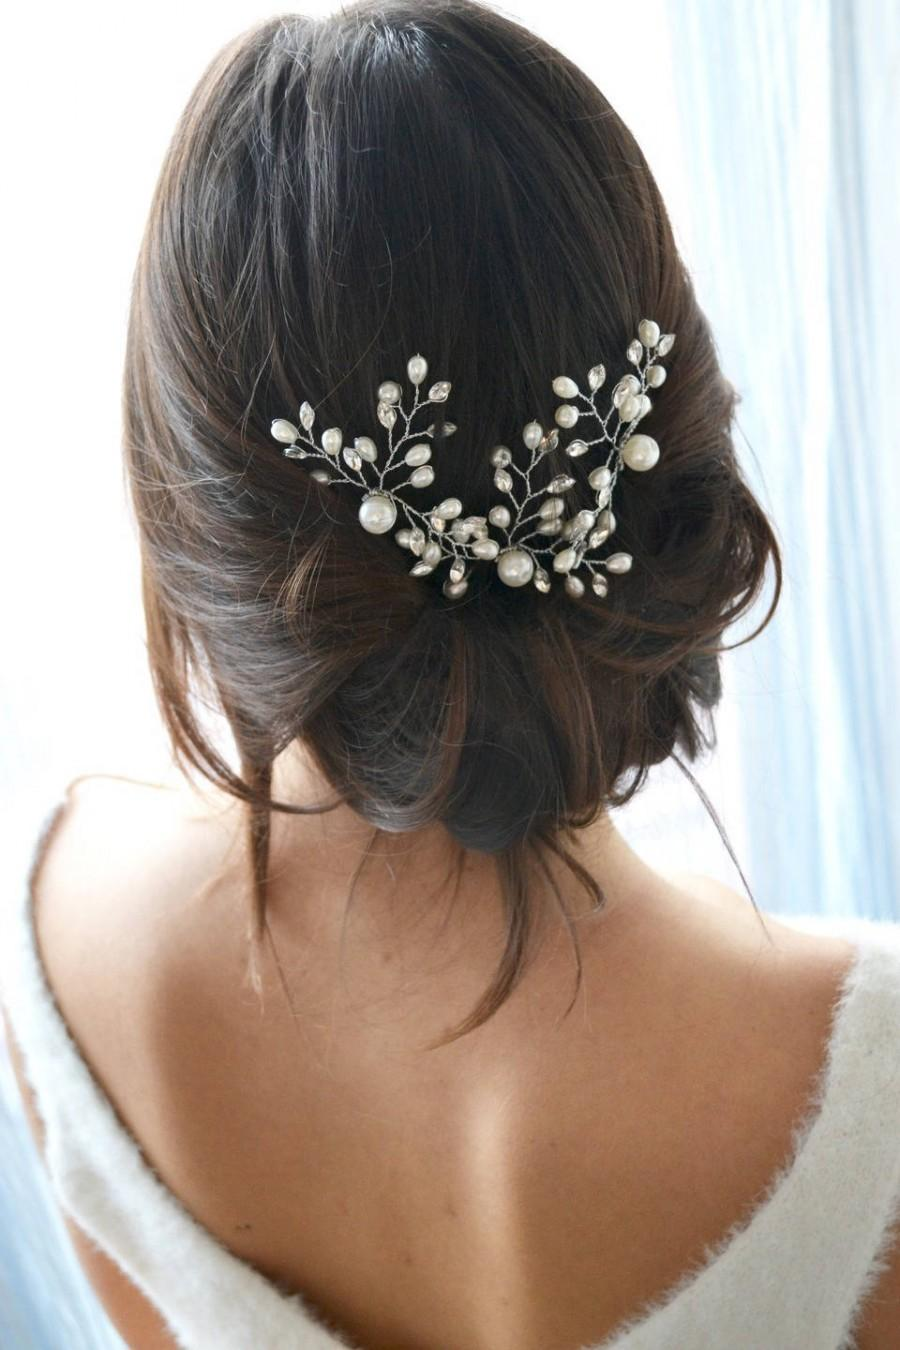 Mariage - White bridal headband. Hair comb, pearls and crystals pin stick. Delicate Bridal, Bohemian, romantic hair accessory.